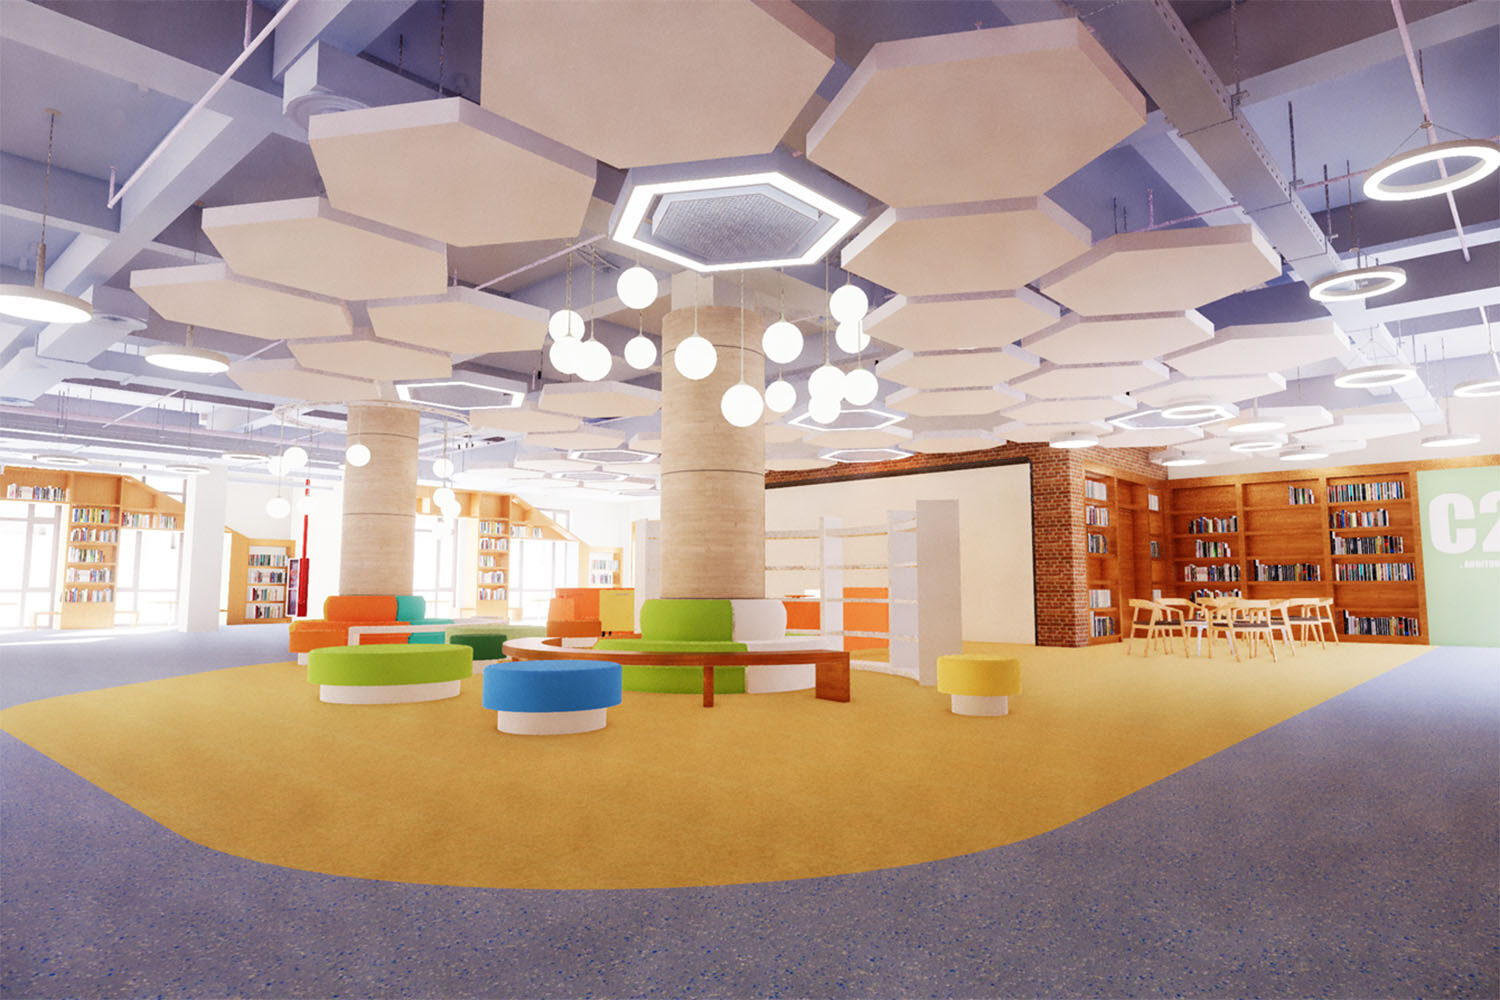 An artist's impression of the interior of the new school